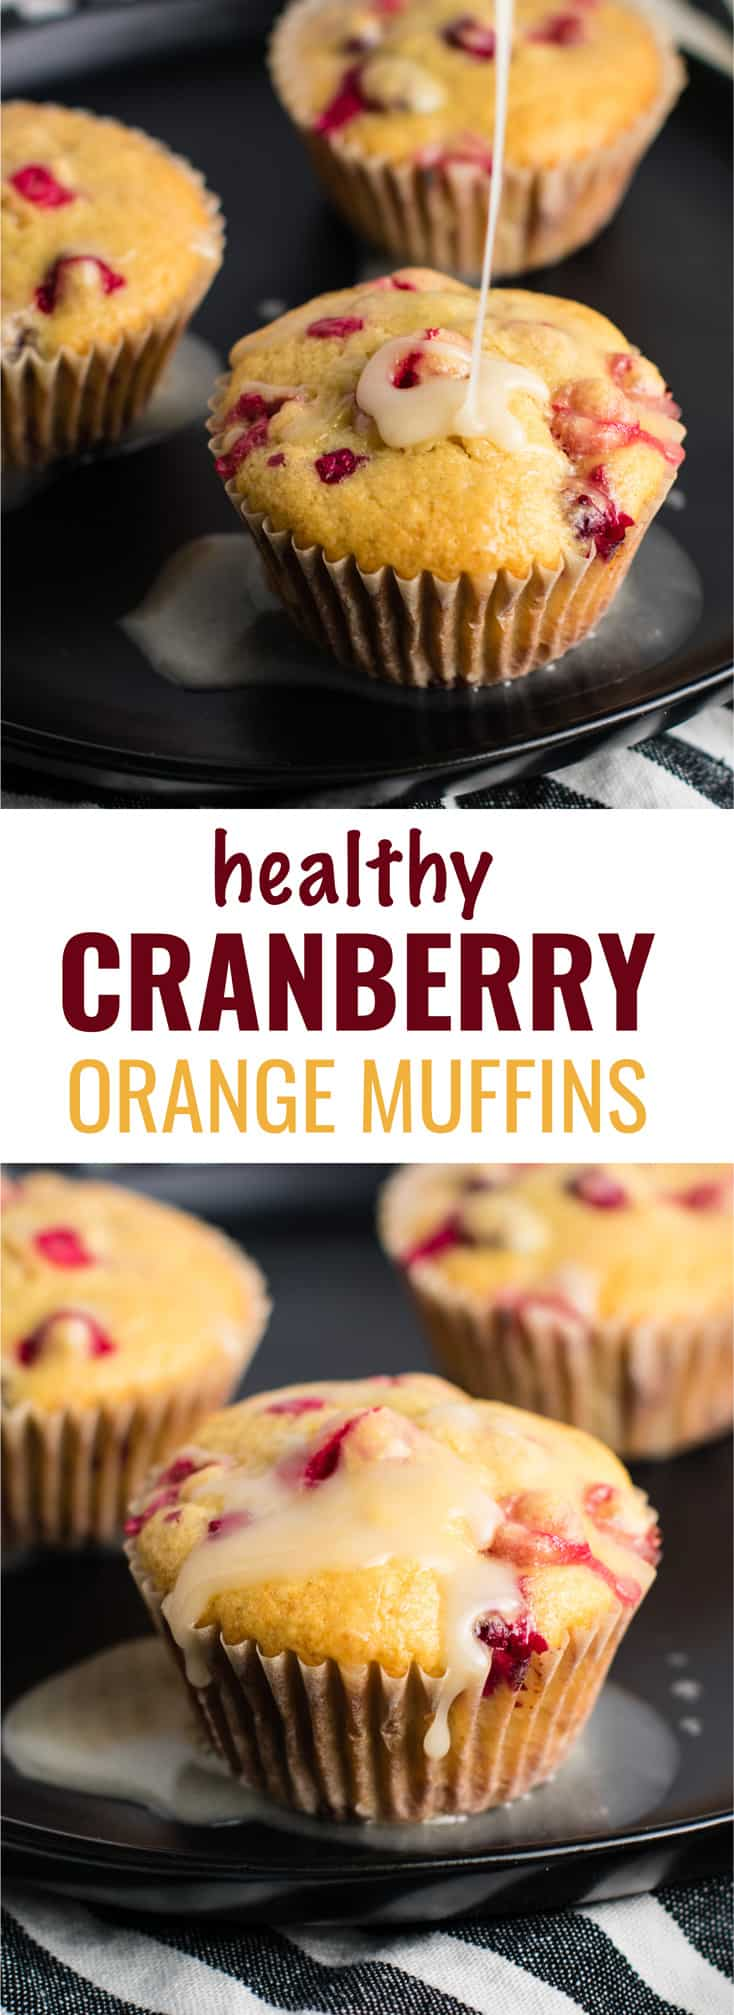 Healthy Cranberry Orange Muffins recipe made with greek yogurt and whole wheat pastry flour with a sweet orange glze. A healthier holiday breakfast or dessert! #breakfast #cranberry #muffins #cranberryorangemuffins #healthy